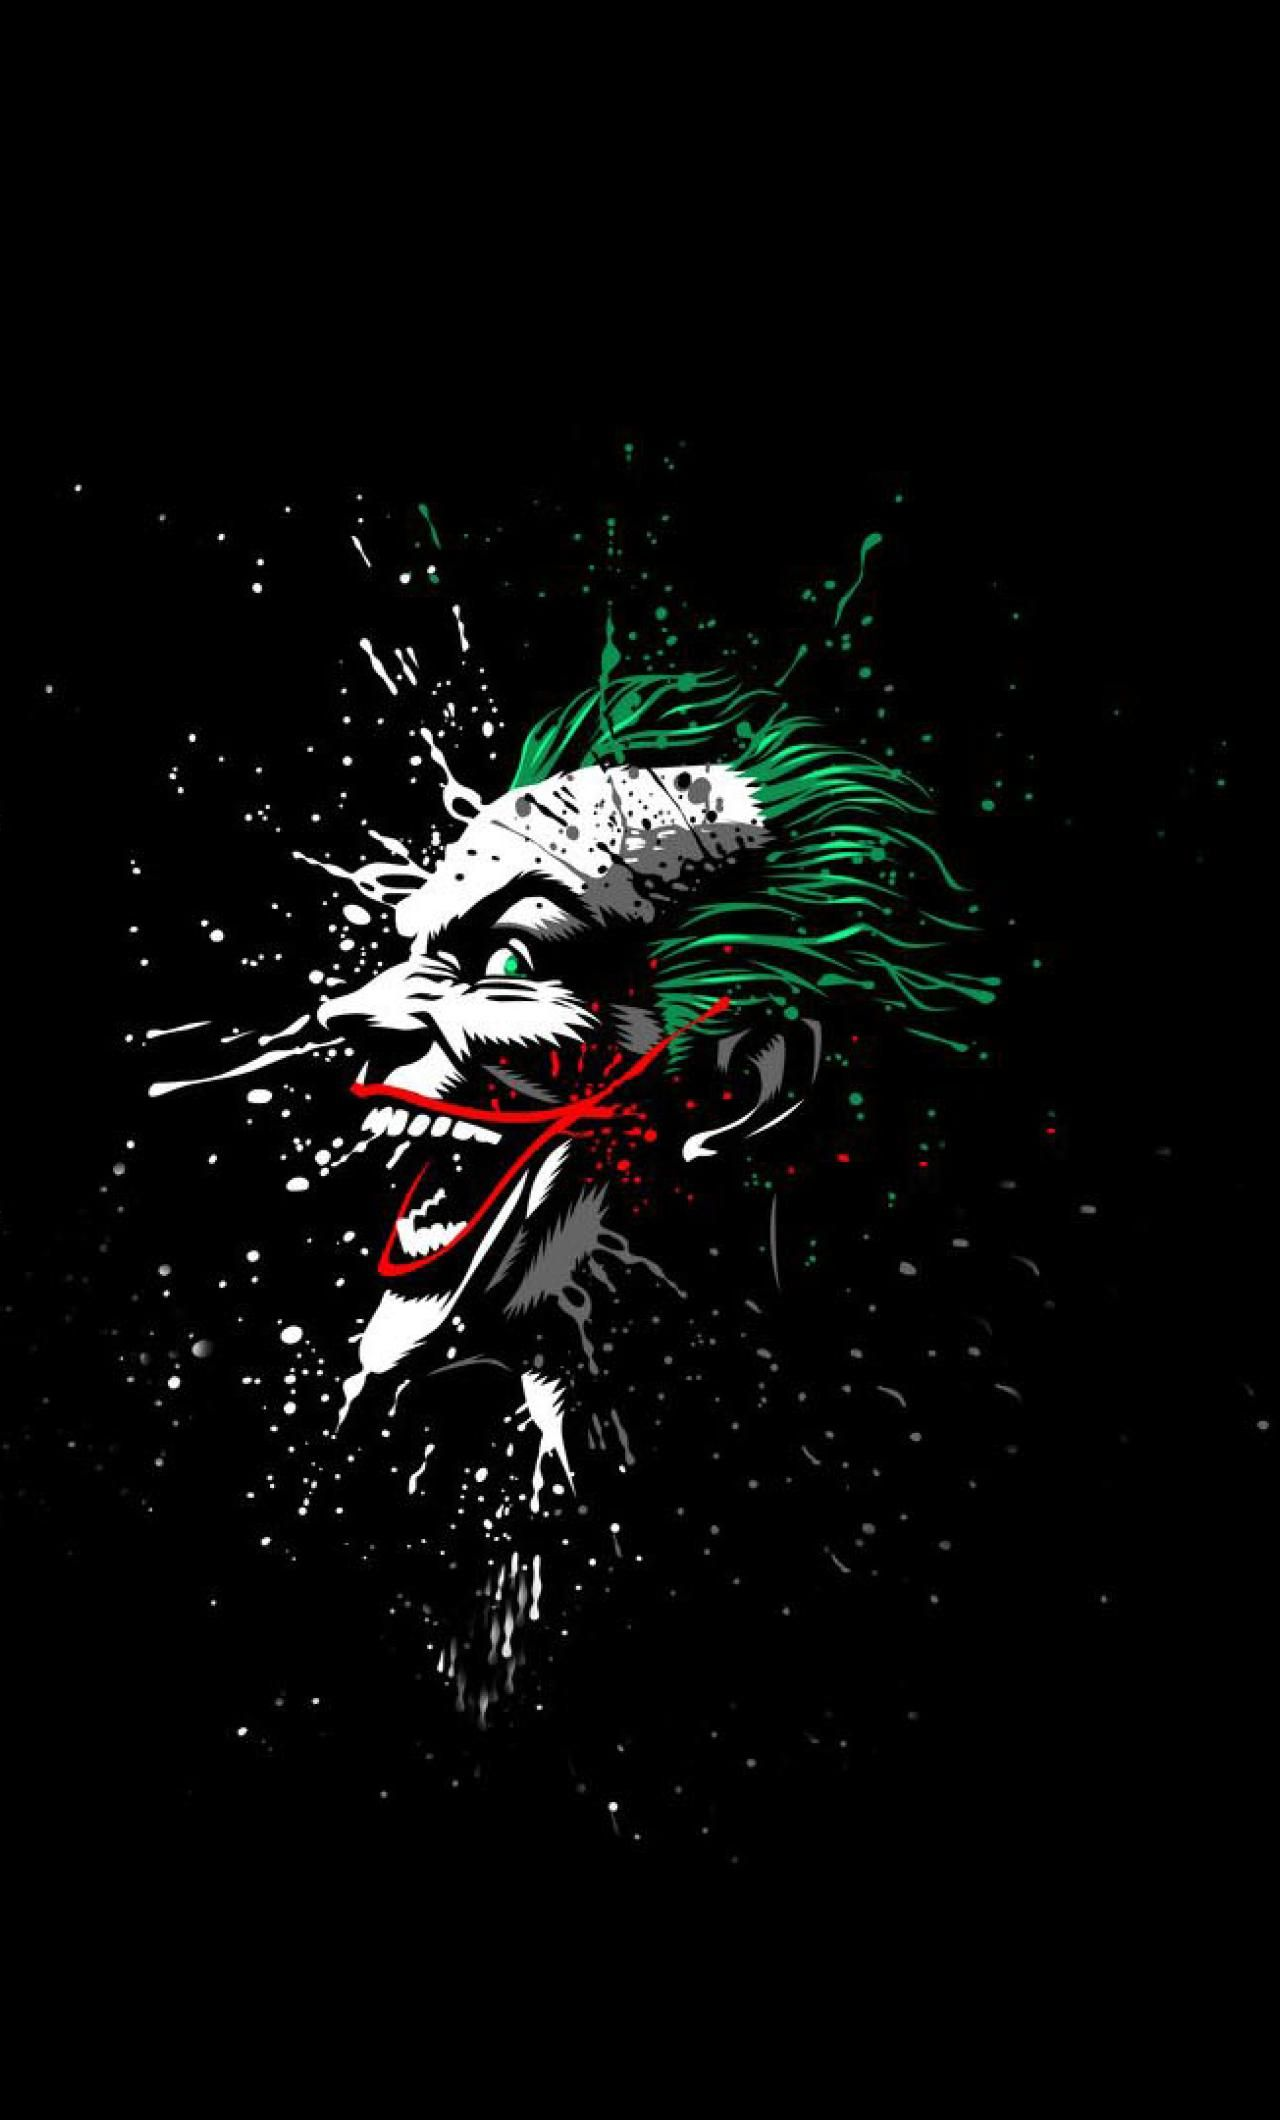 Download Joker Artwork Resolution Full Hd Wallpaper Joker Crazy Is Amazing Hd Wallpapers For Desktop In 2020 Joker Artwork Joker Iphone Wallpaper Joker Hd Wallpaper